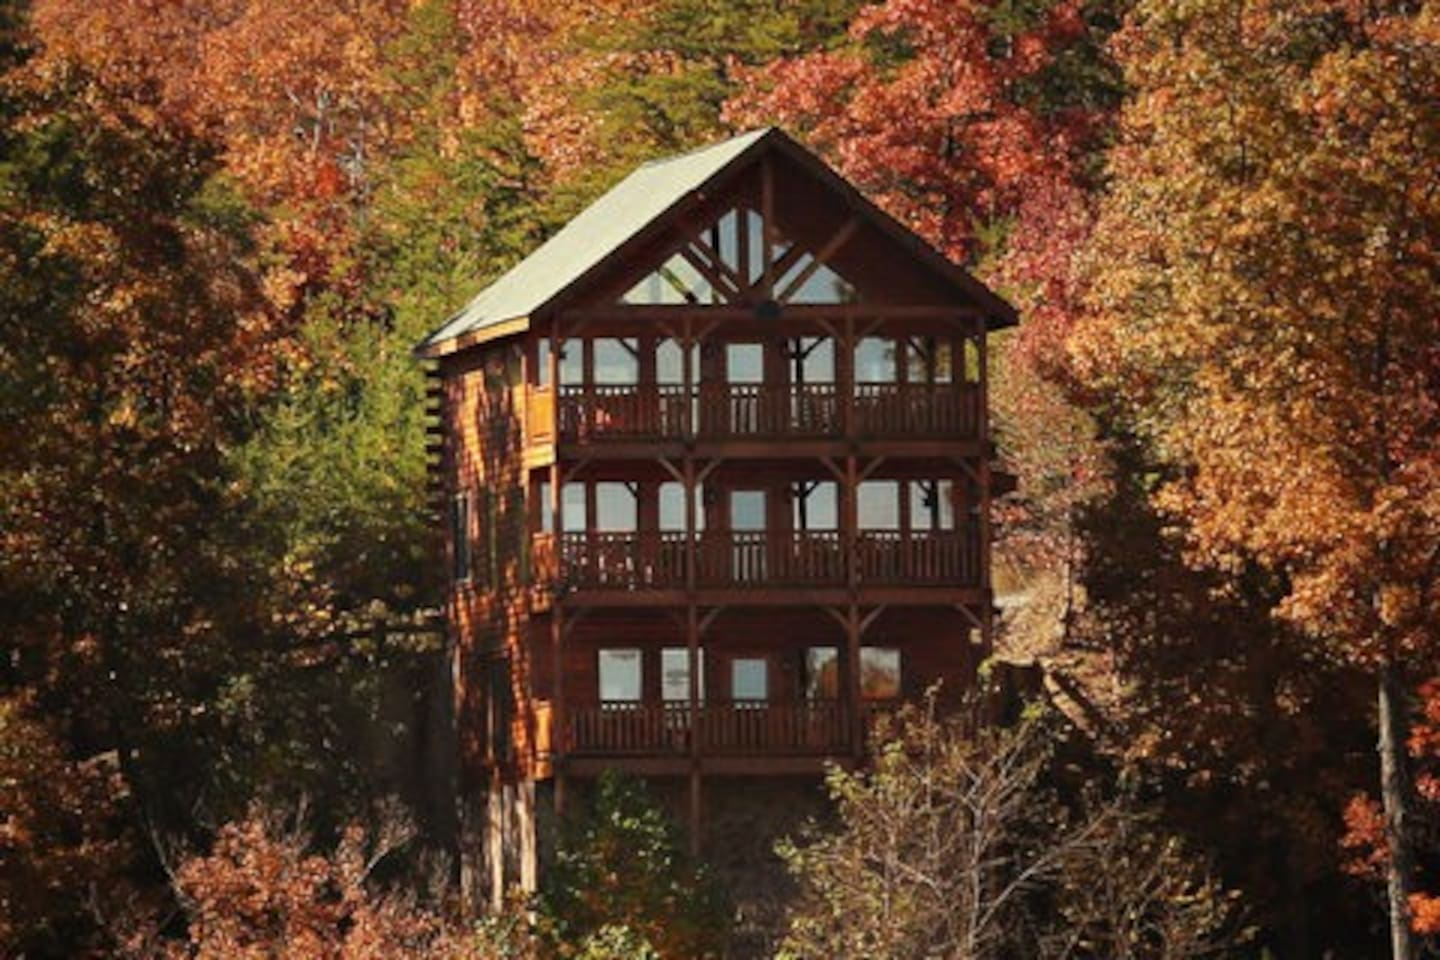 His Amazing Grace   Cabins for Rent in Sevierville  Tennessee  United States. His Amazing Grace   Cabins for Rent in Sevierville  Tennessee